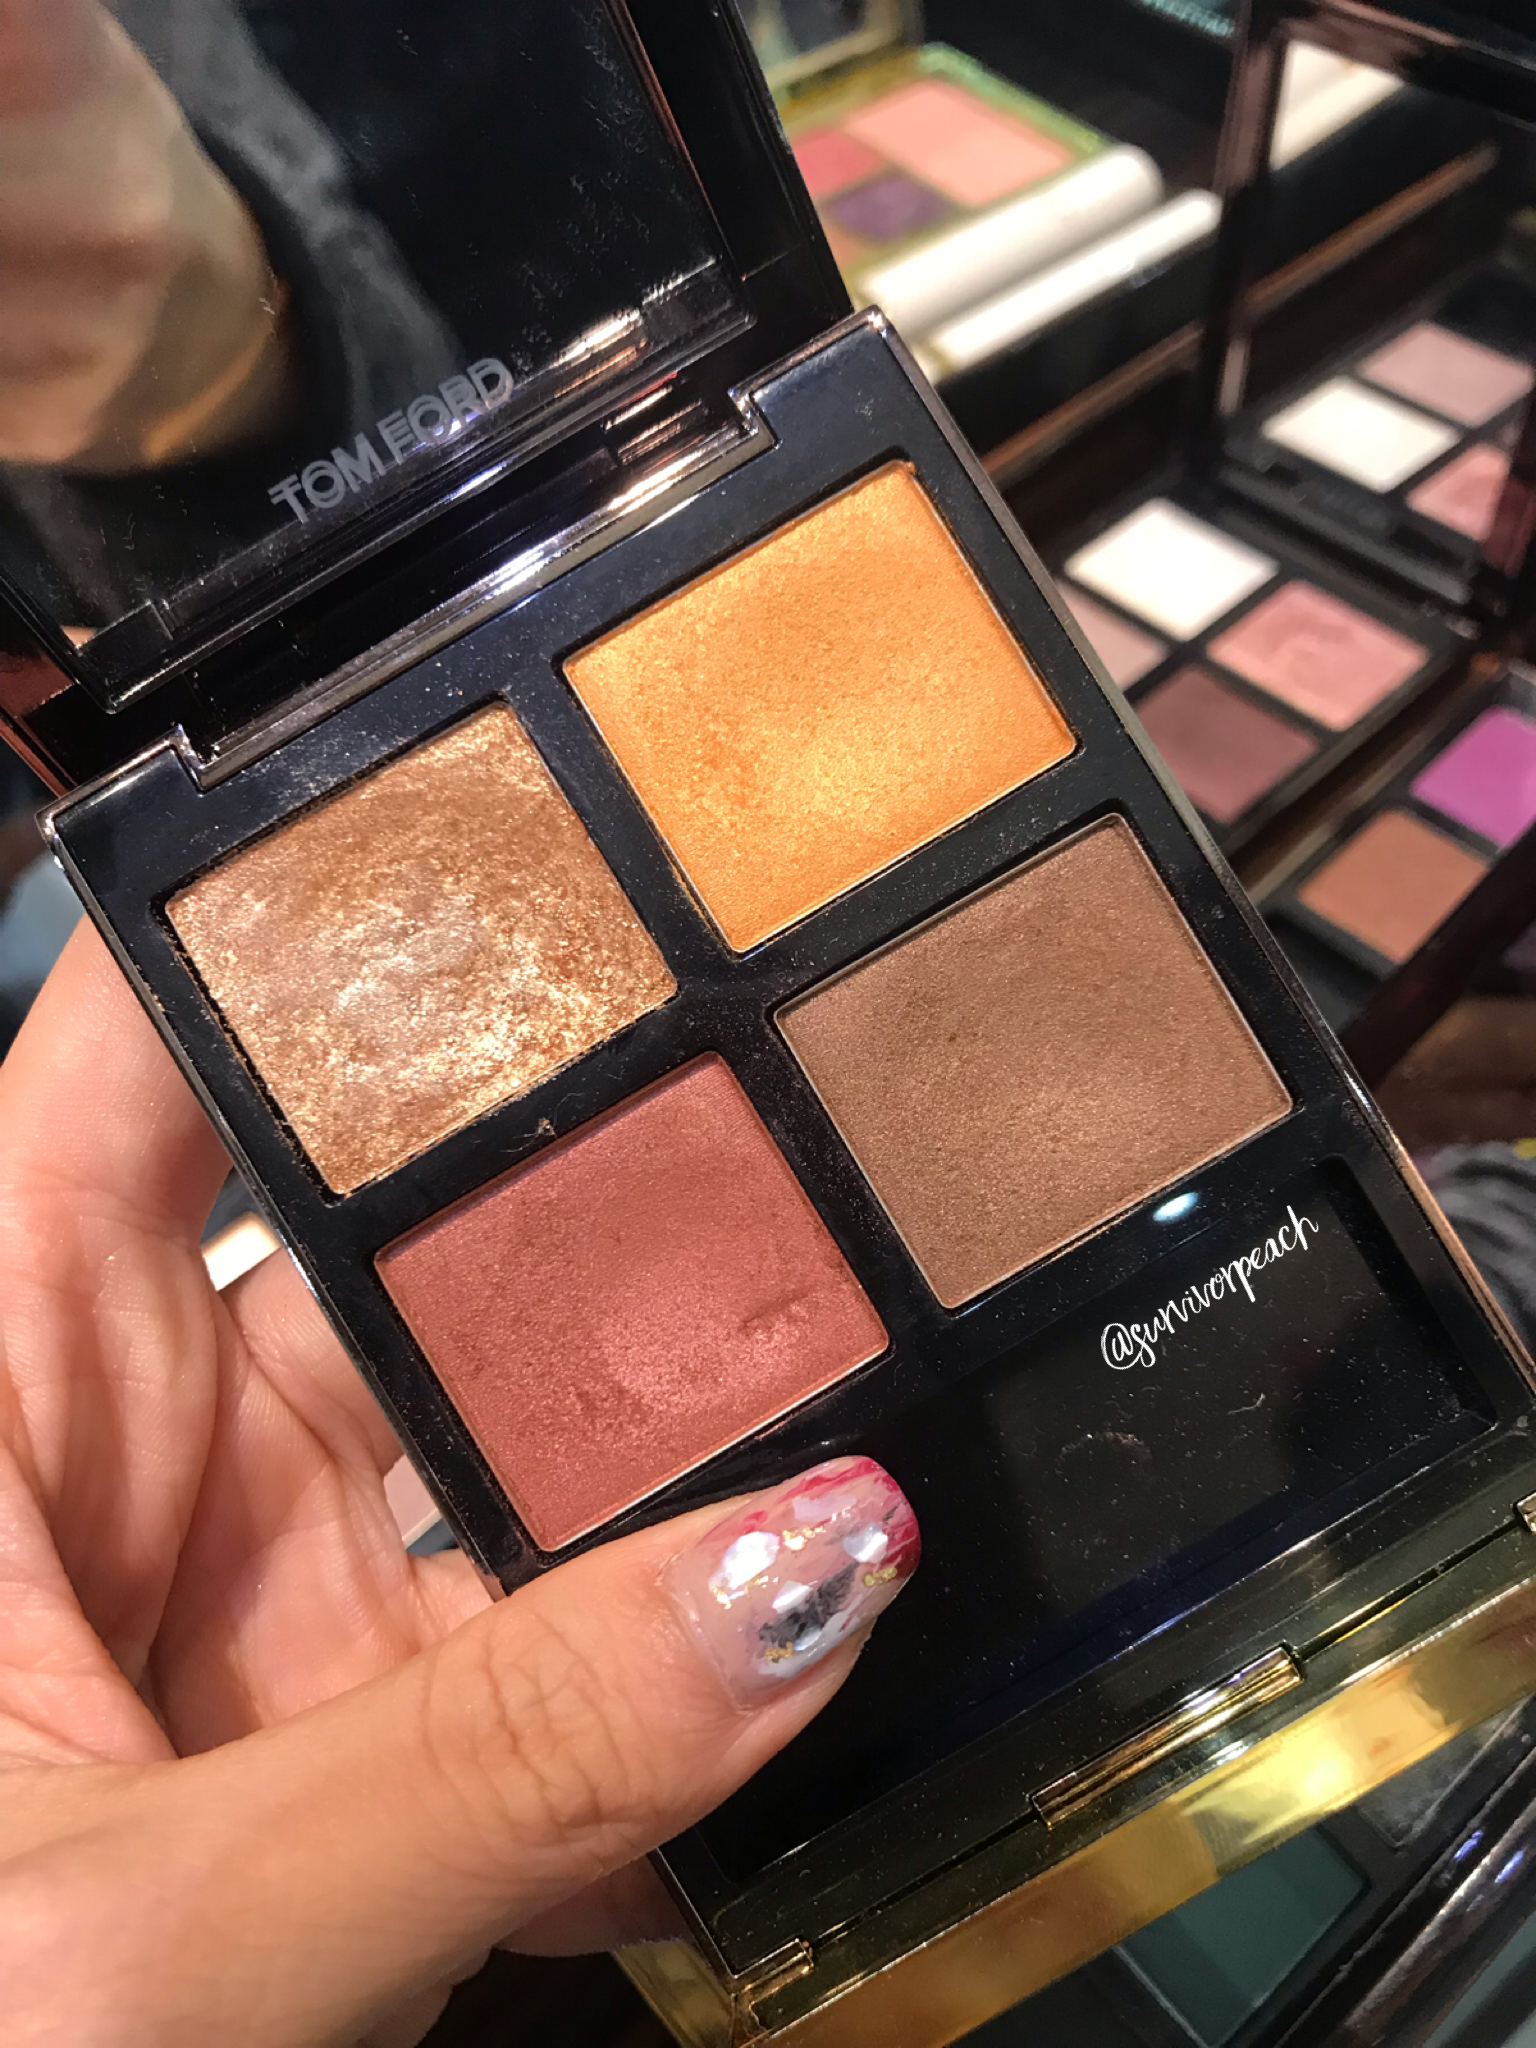 Tom Ford Eye Quad in Leopard Sun